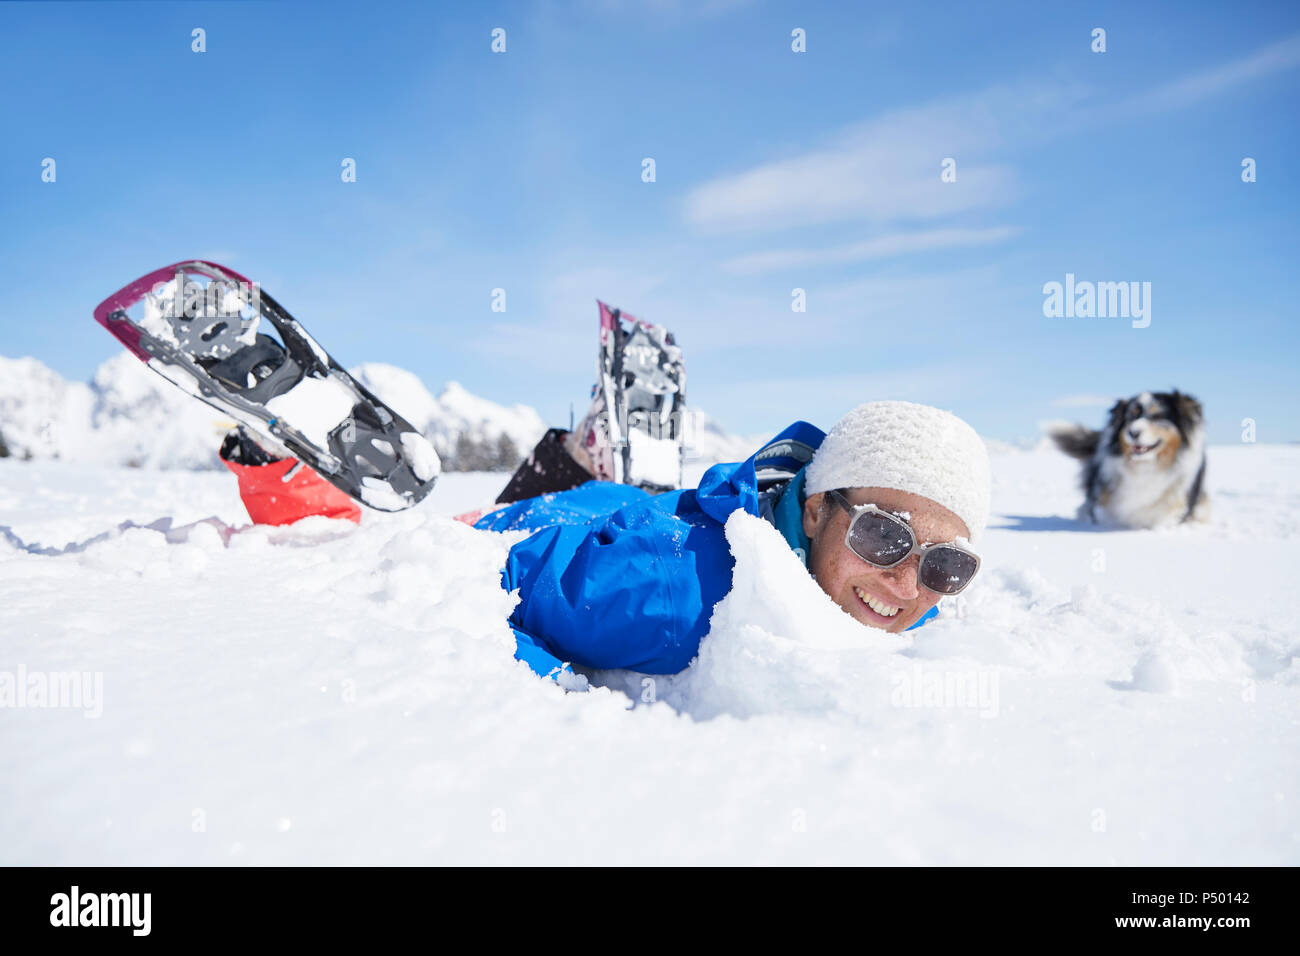 Austria, Tyrol, snowshoe hiker and dog, having fun in the snow Stock Photo